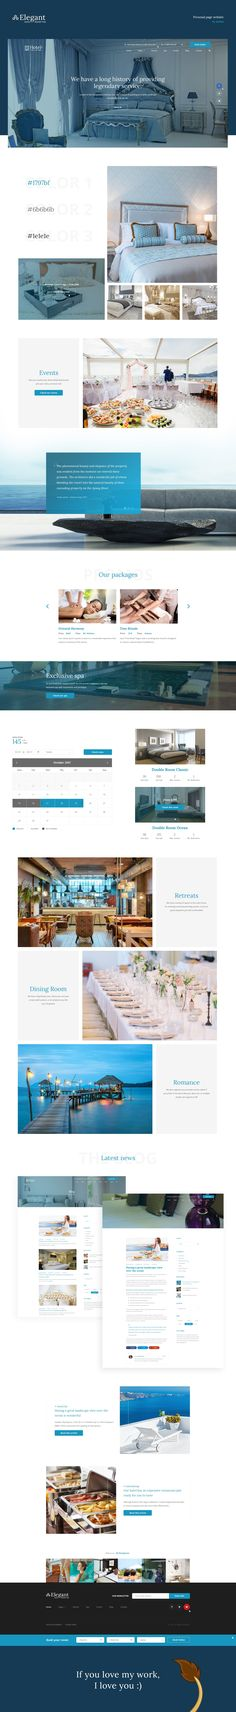 #accommodation, #apartment, #book, #booking, #chalet, #holiday, #hostel, #hotel, #motel, #reservation, #resort, #room, #travel, #psd, #website